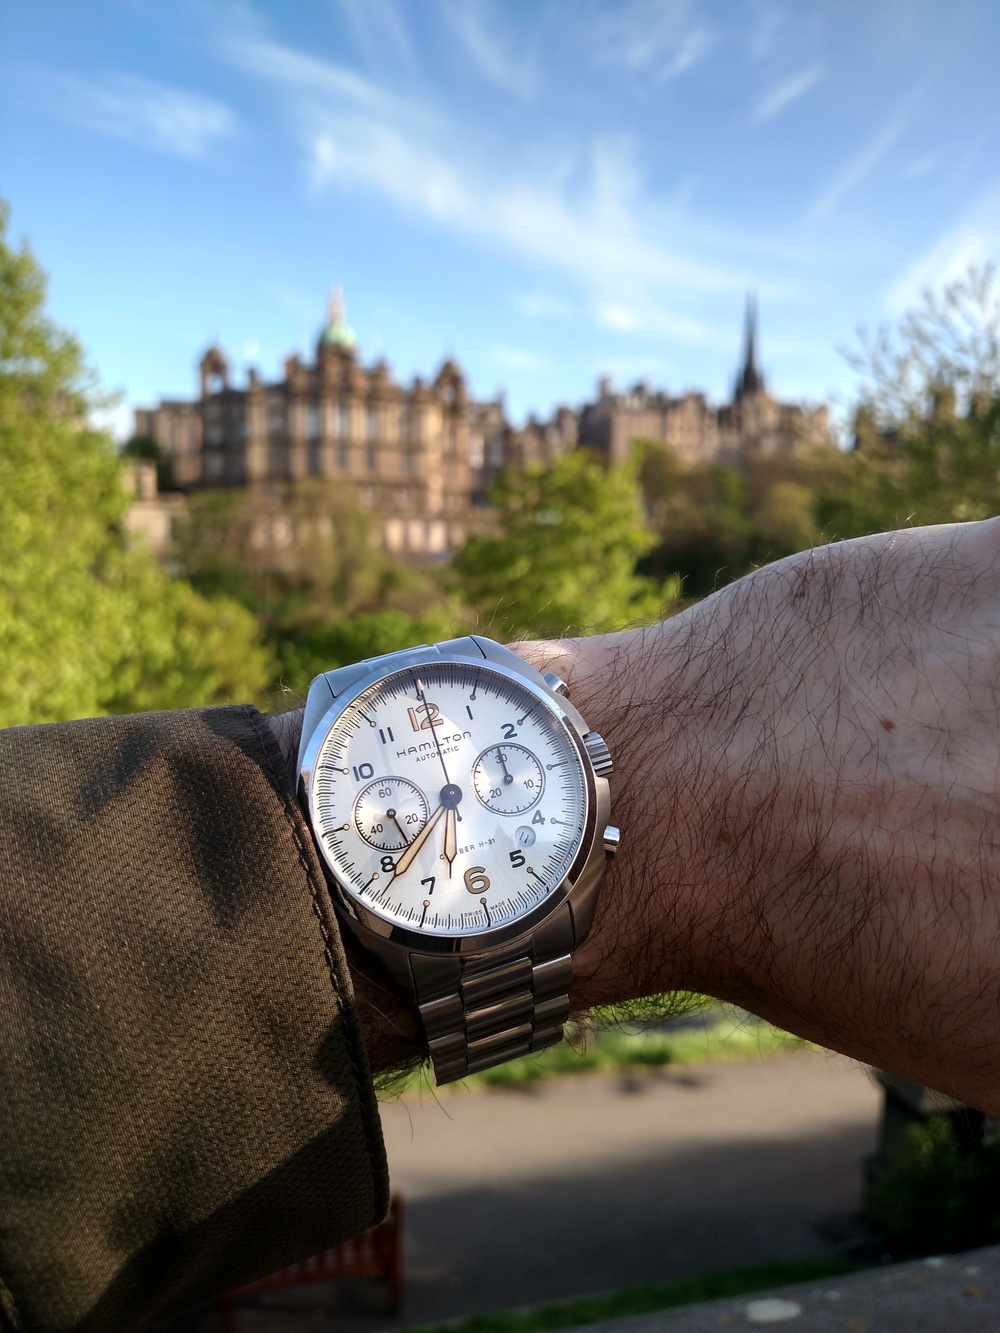 Hamilton Khaki Pilot Pioneer chronograph  Looking toward the Museum on the Mound from Scott Monument  Edinburgh, Scotland